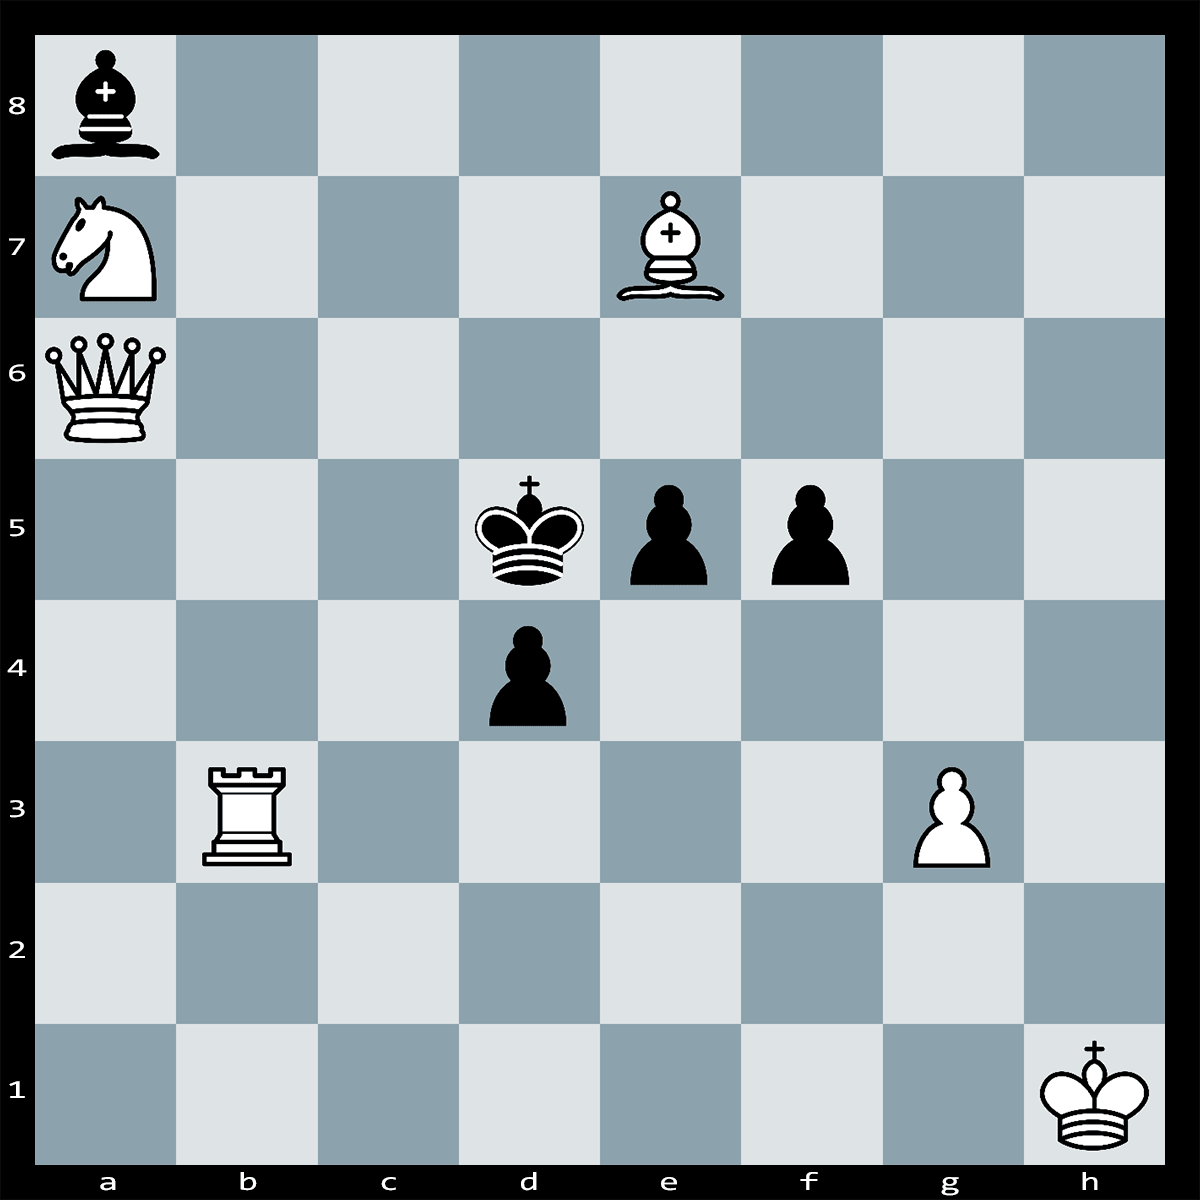 Mate in Two Moves, White to Play - Chess Puzzle #24